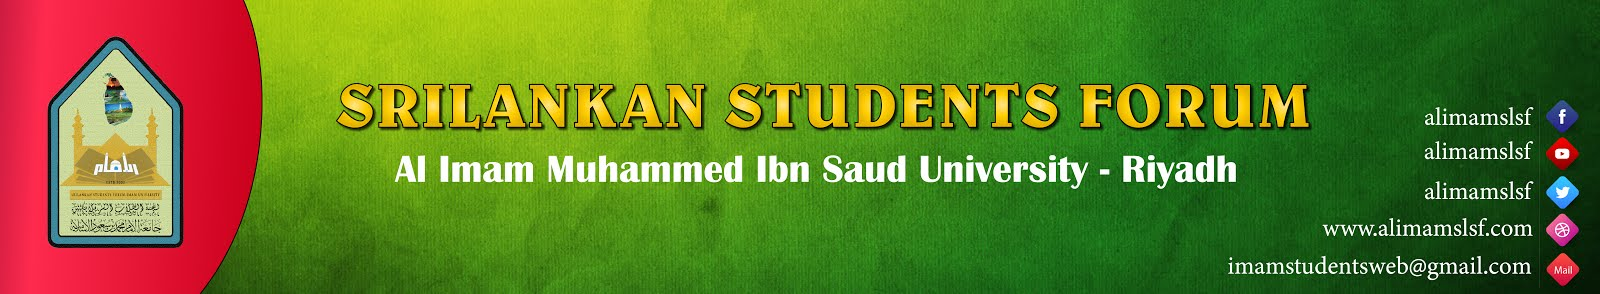 SRILANKAN STUDENTS FORUM - IMAM UNIVERSITY